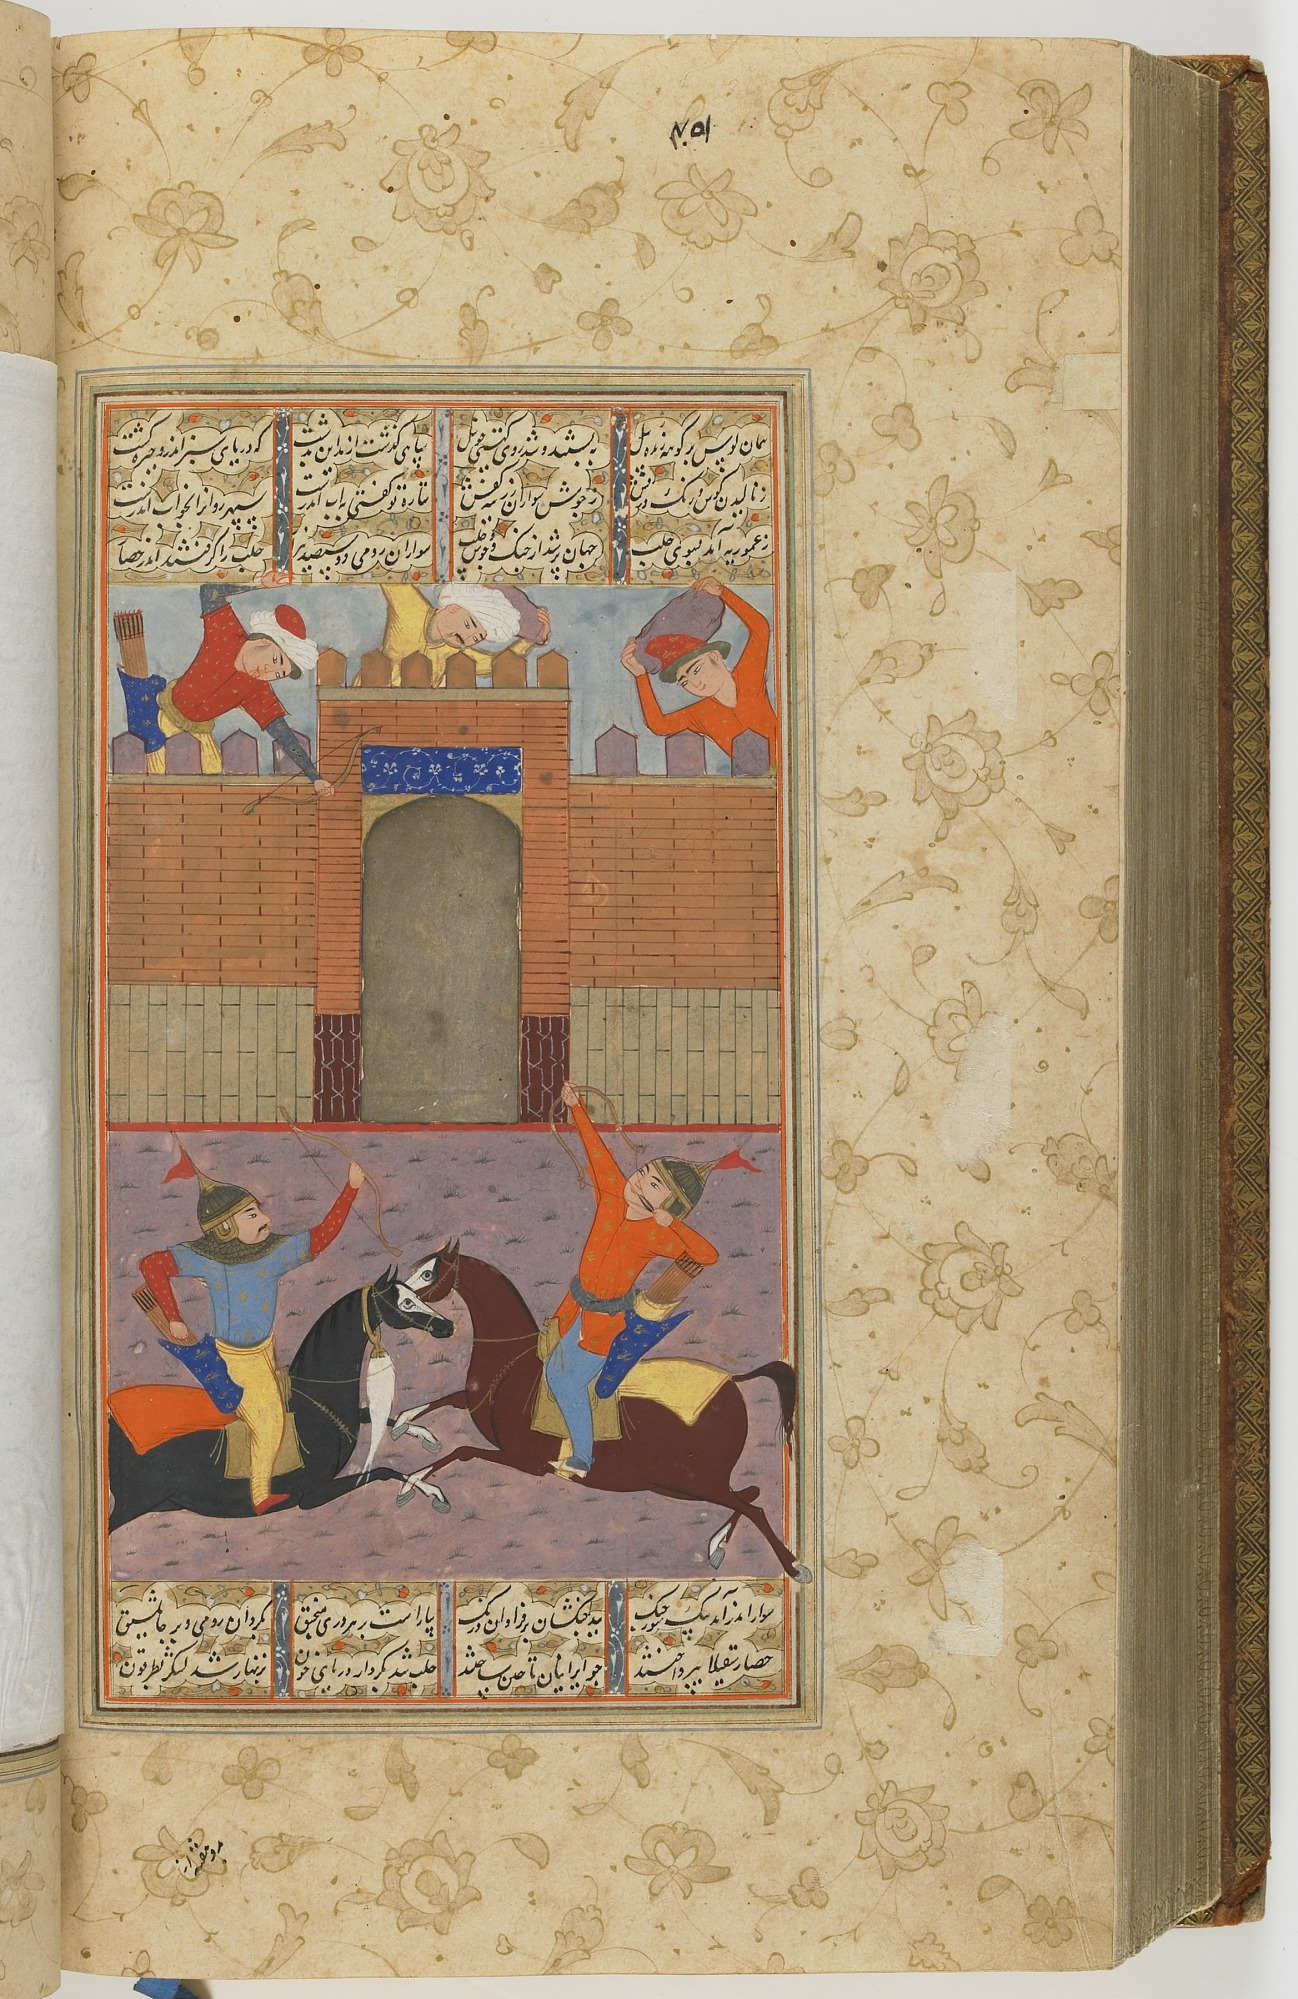 folio 452 verso: The Shahnama (Book of kings) by Firdausi (d. 1020)